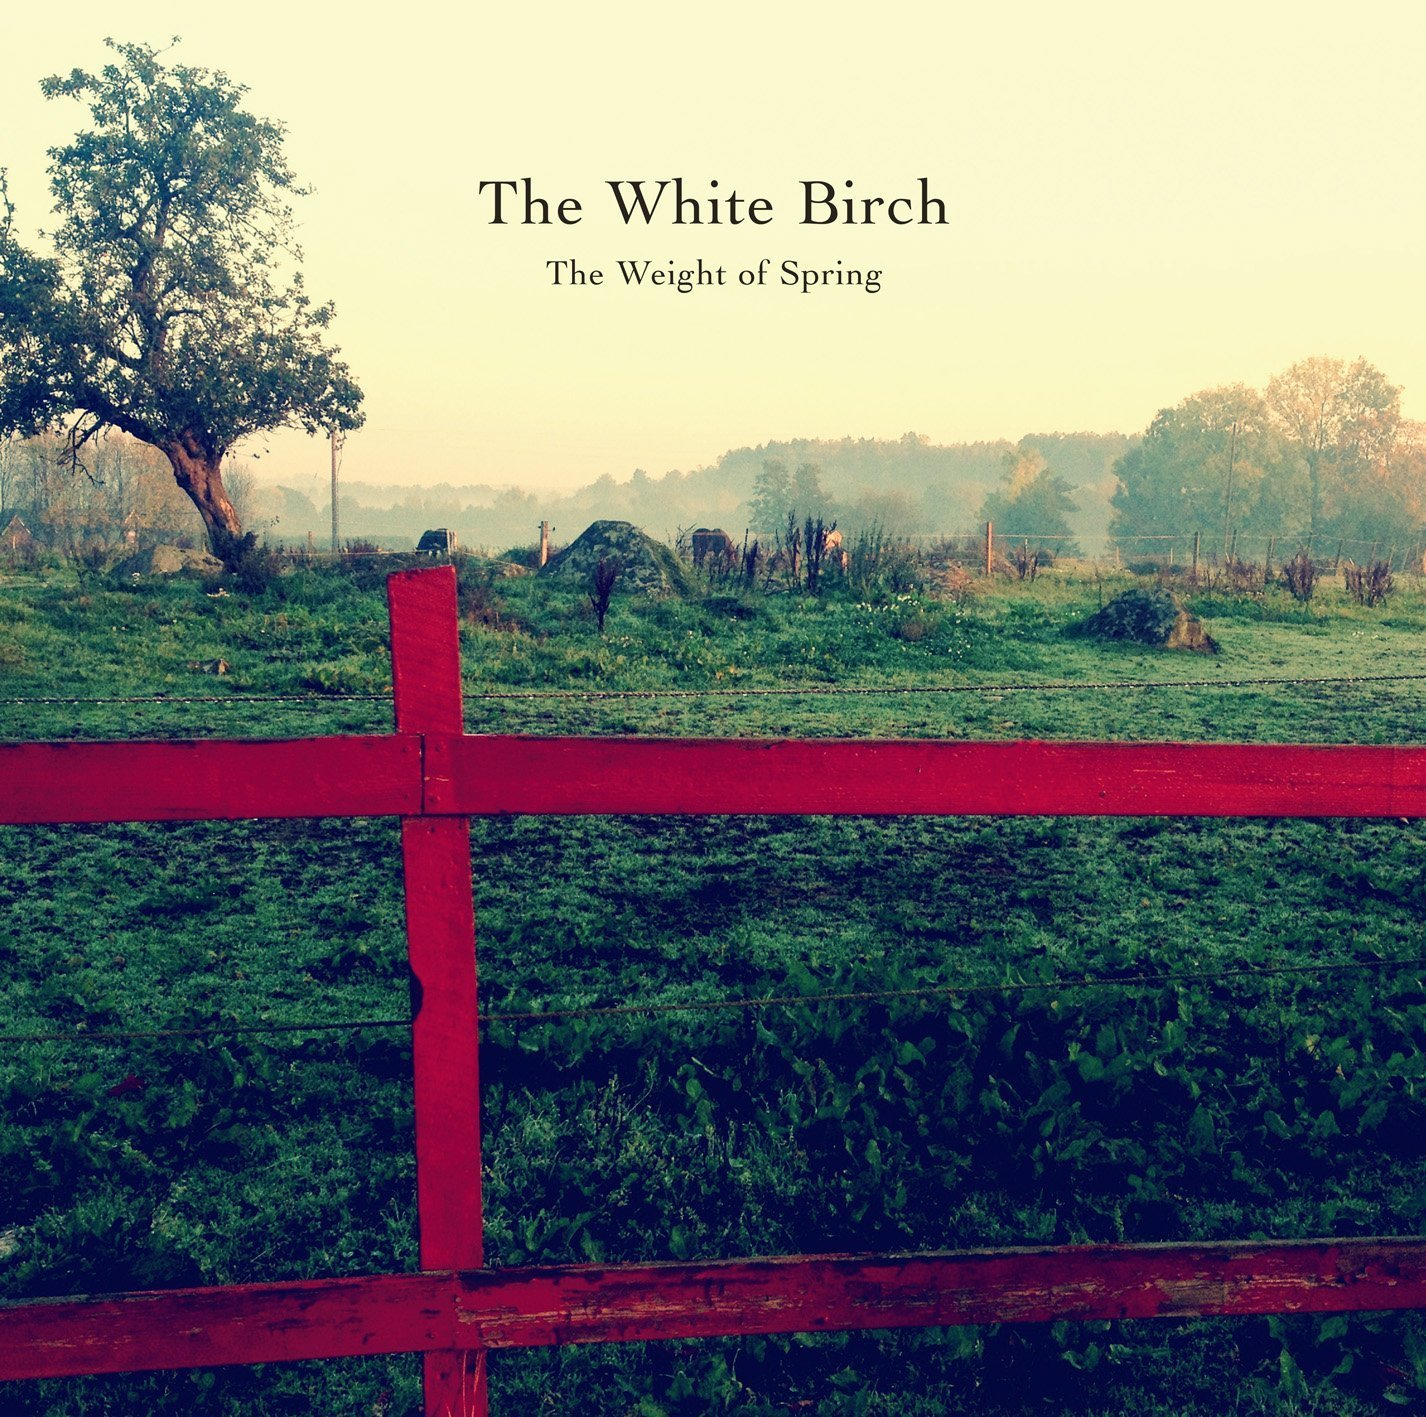 The White Birch: The Weight of Spring